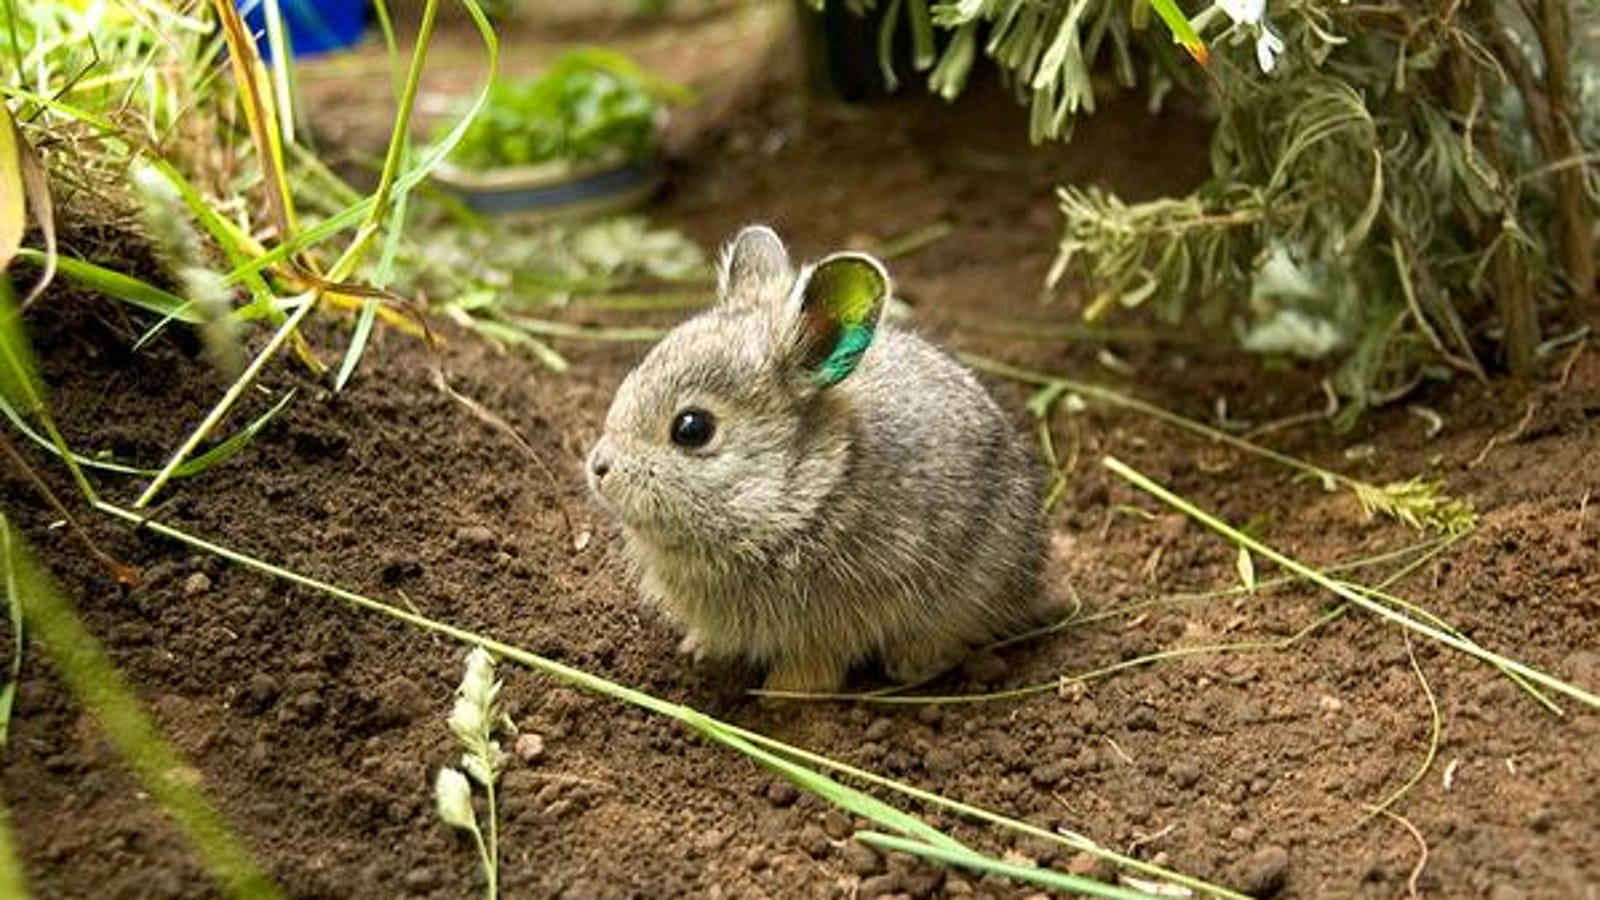 There\'s cute, and there there\'s baby Columbia Basin pygmy rabbit cute.